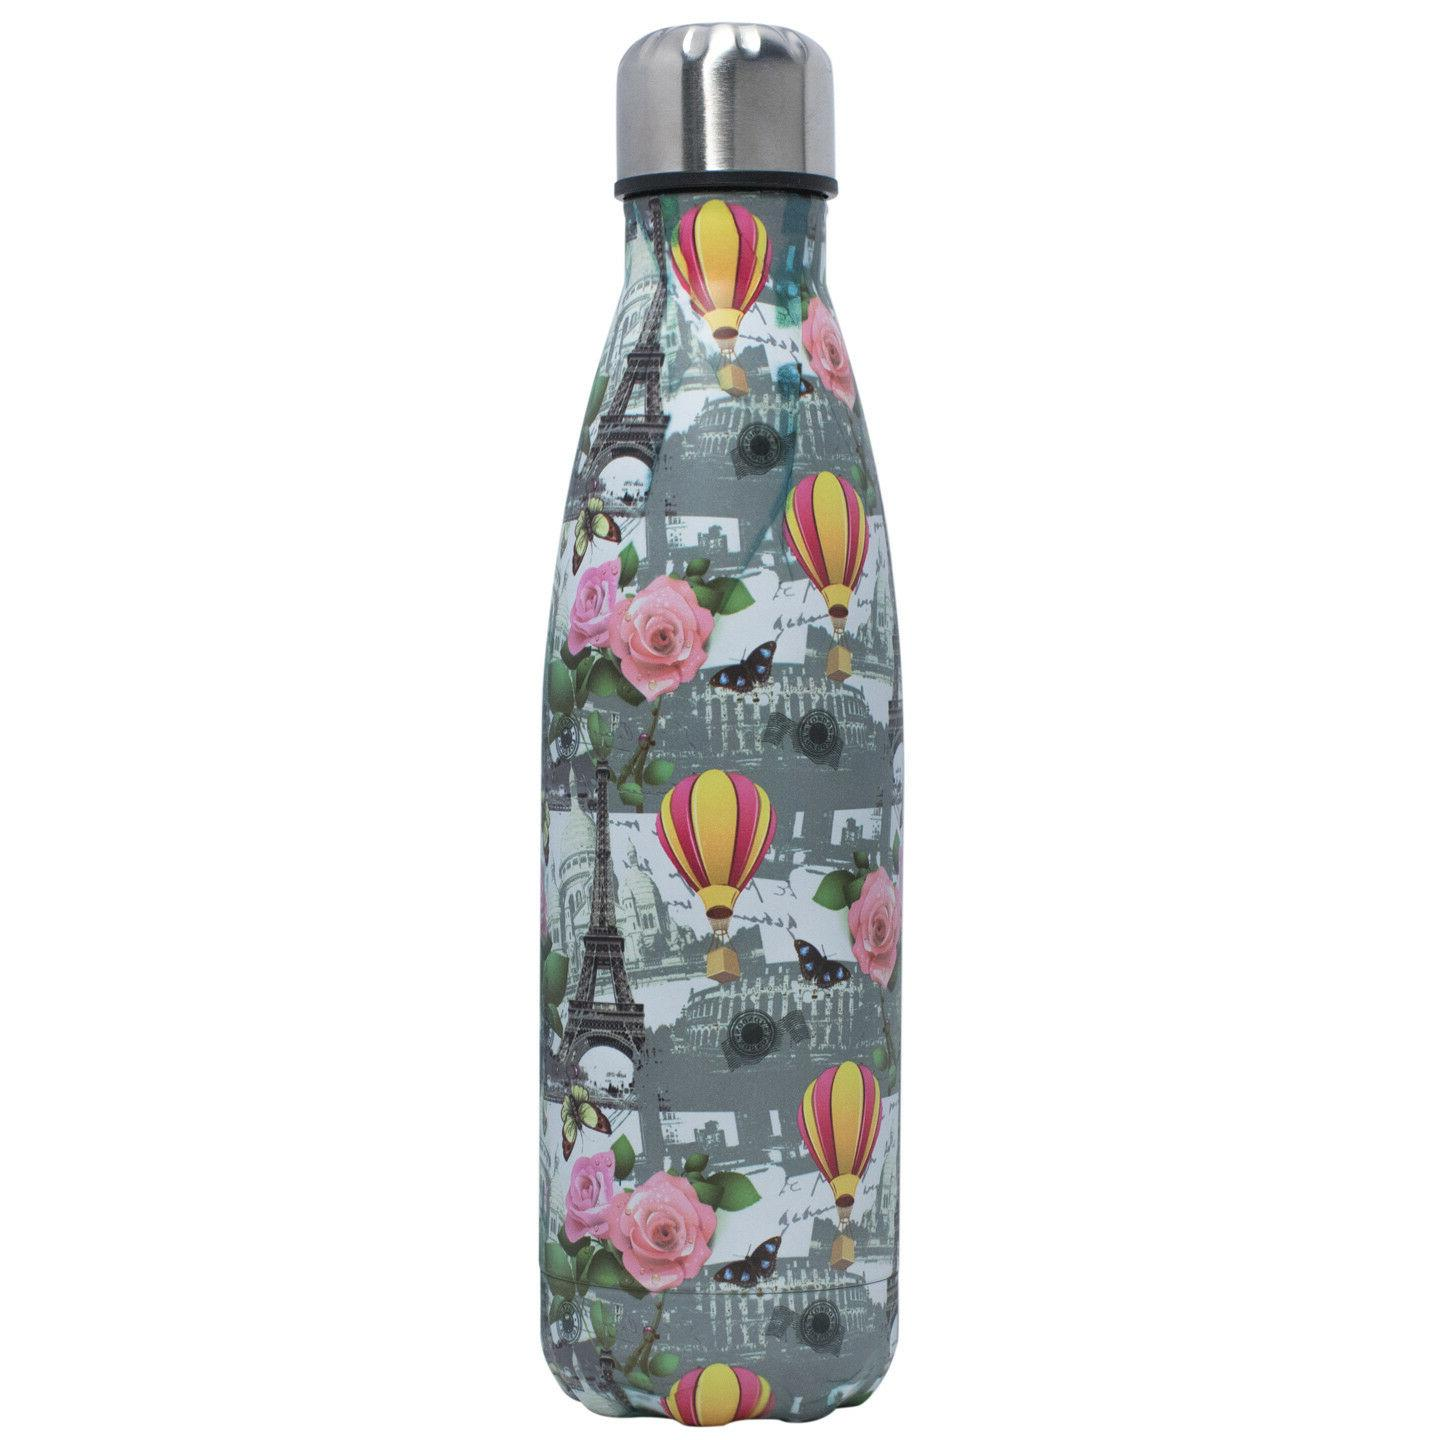 17 oz 500 ml vacuum insulated double